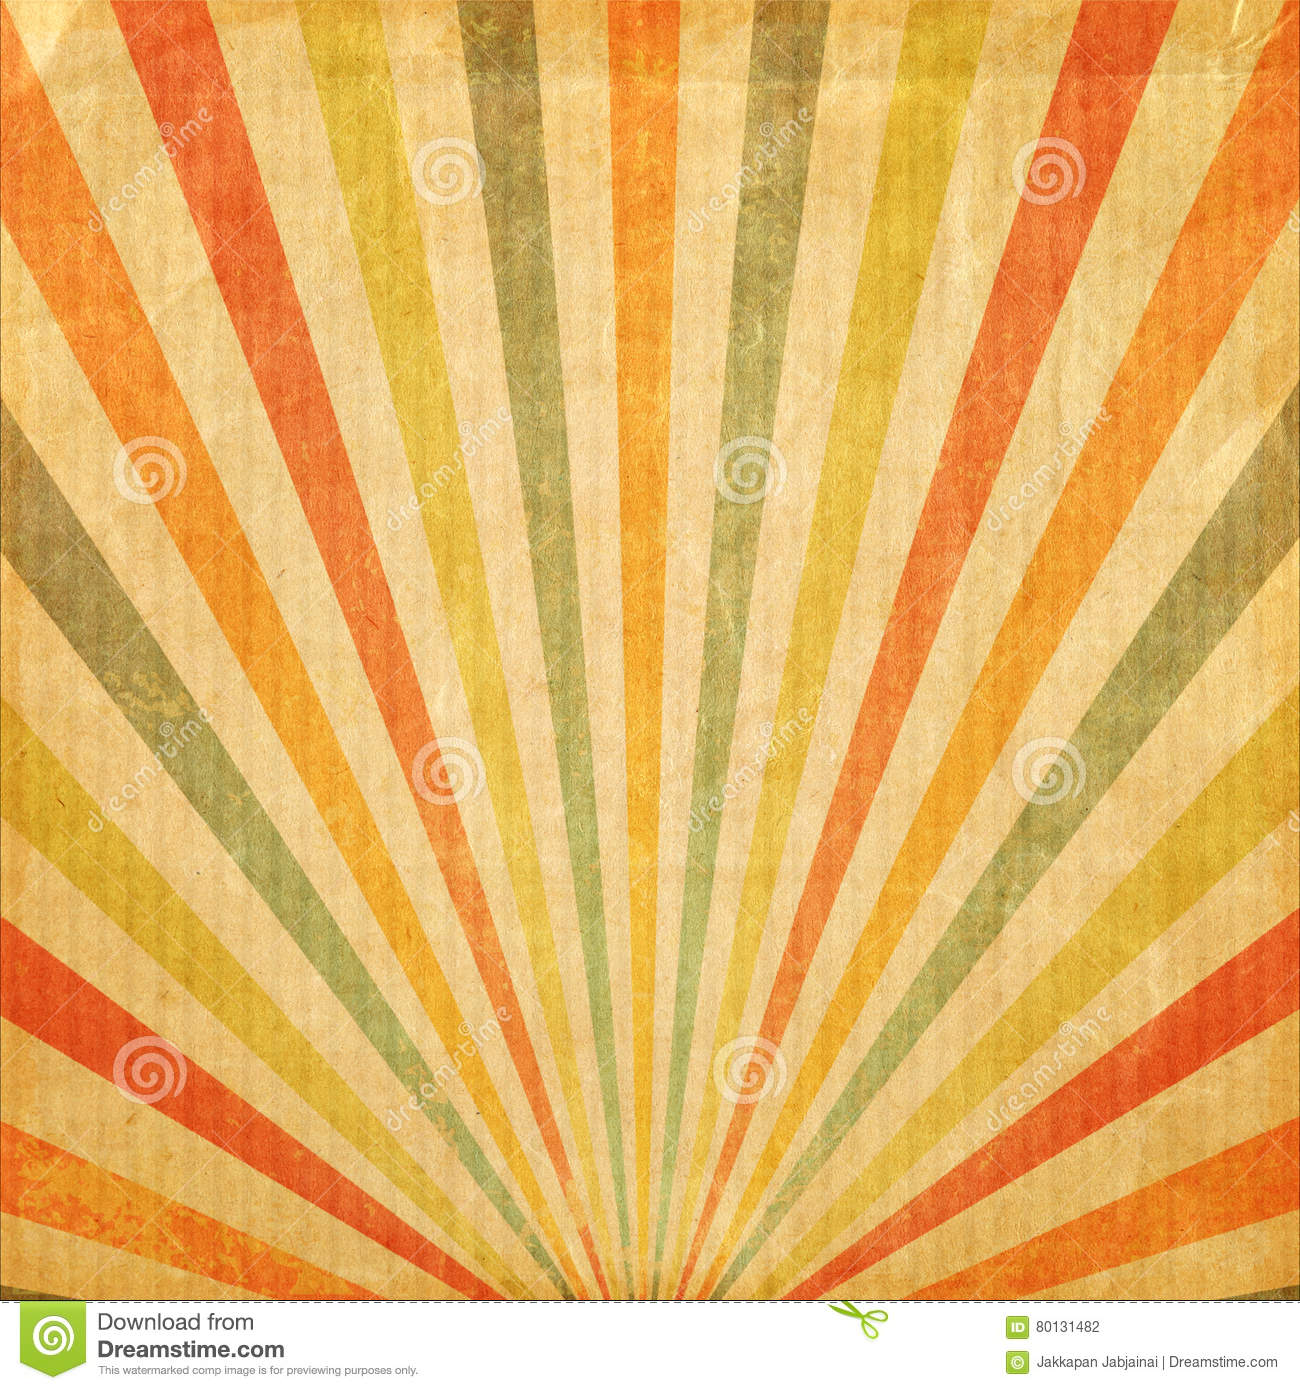 Vintage background Multi color rising sun or sun ray